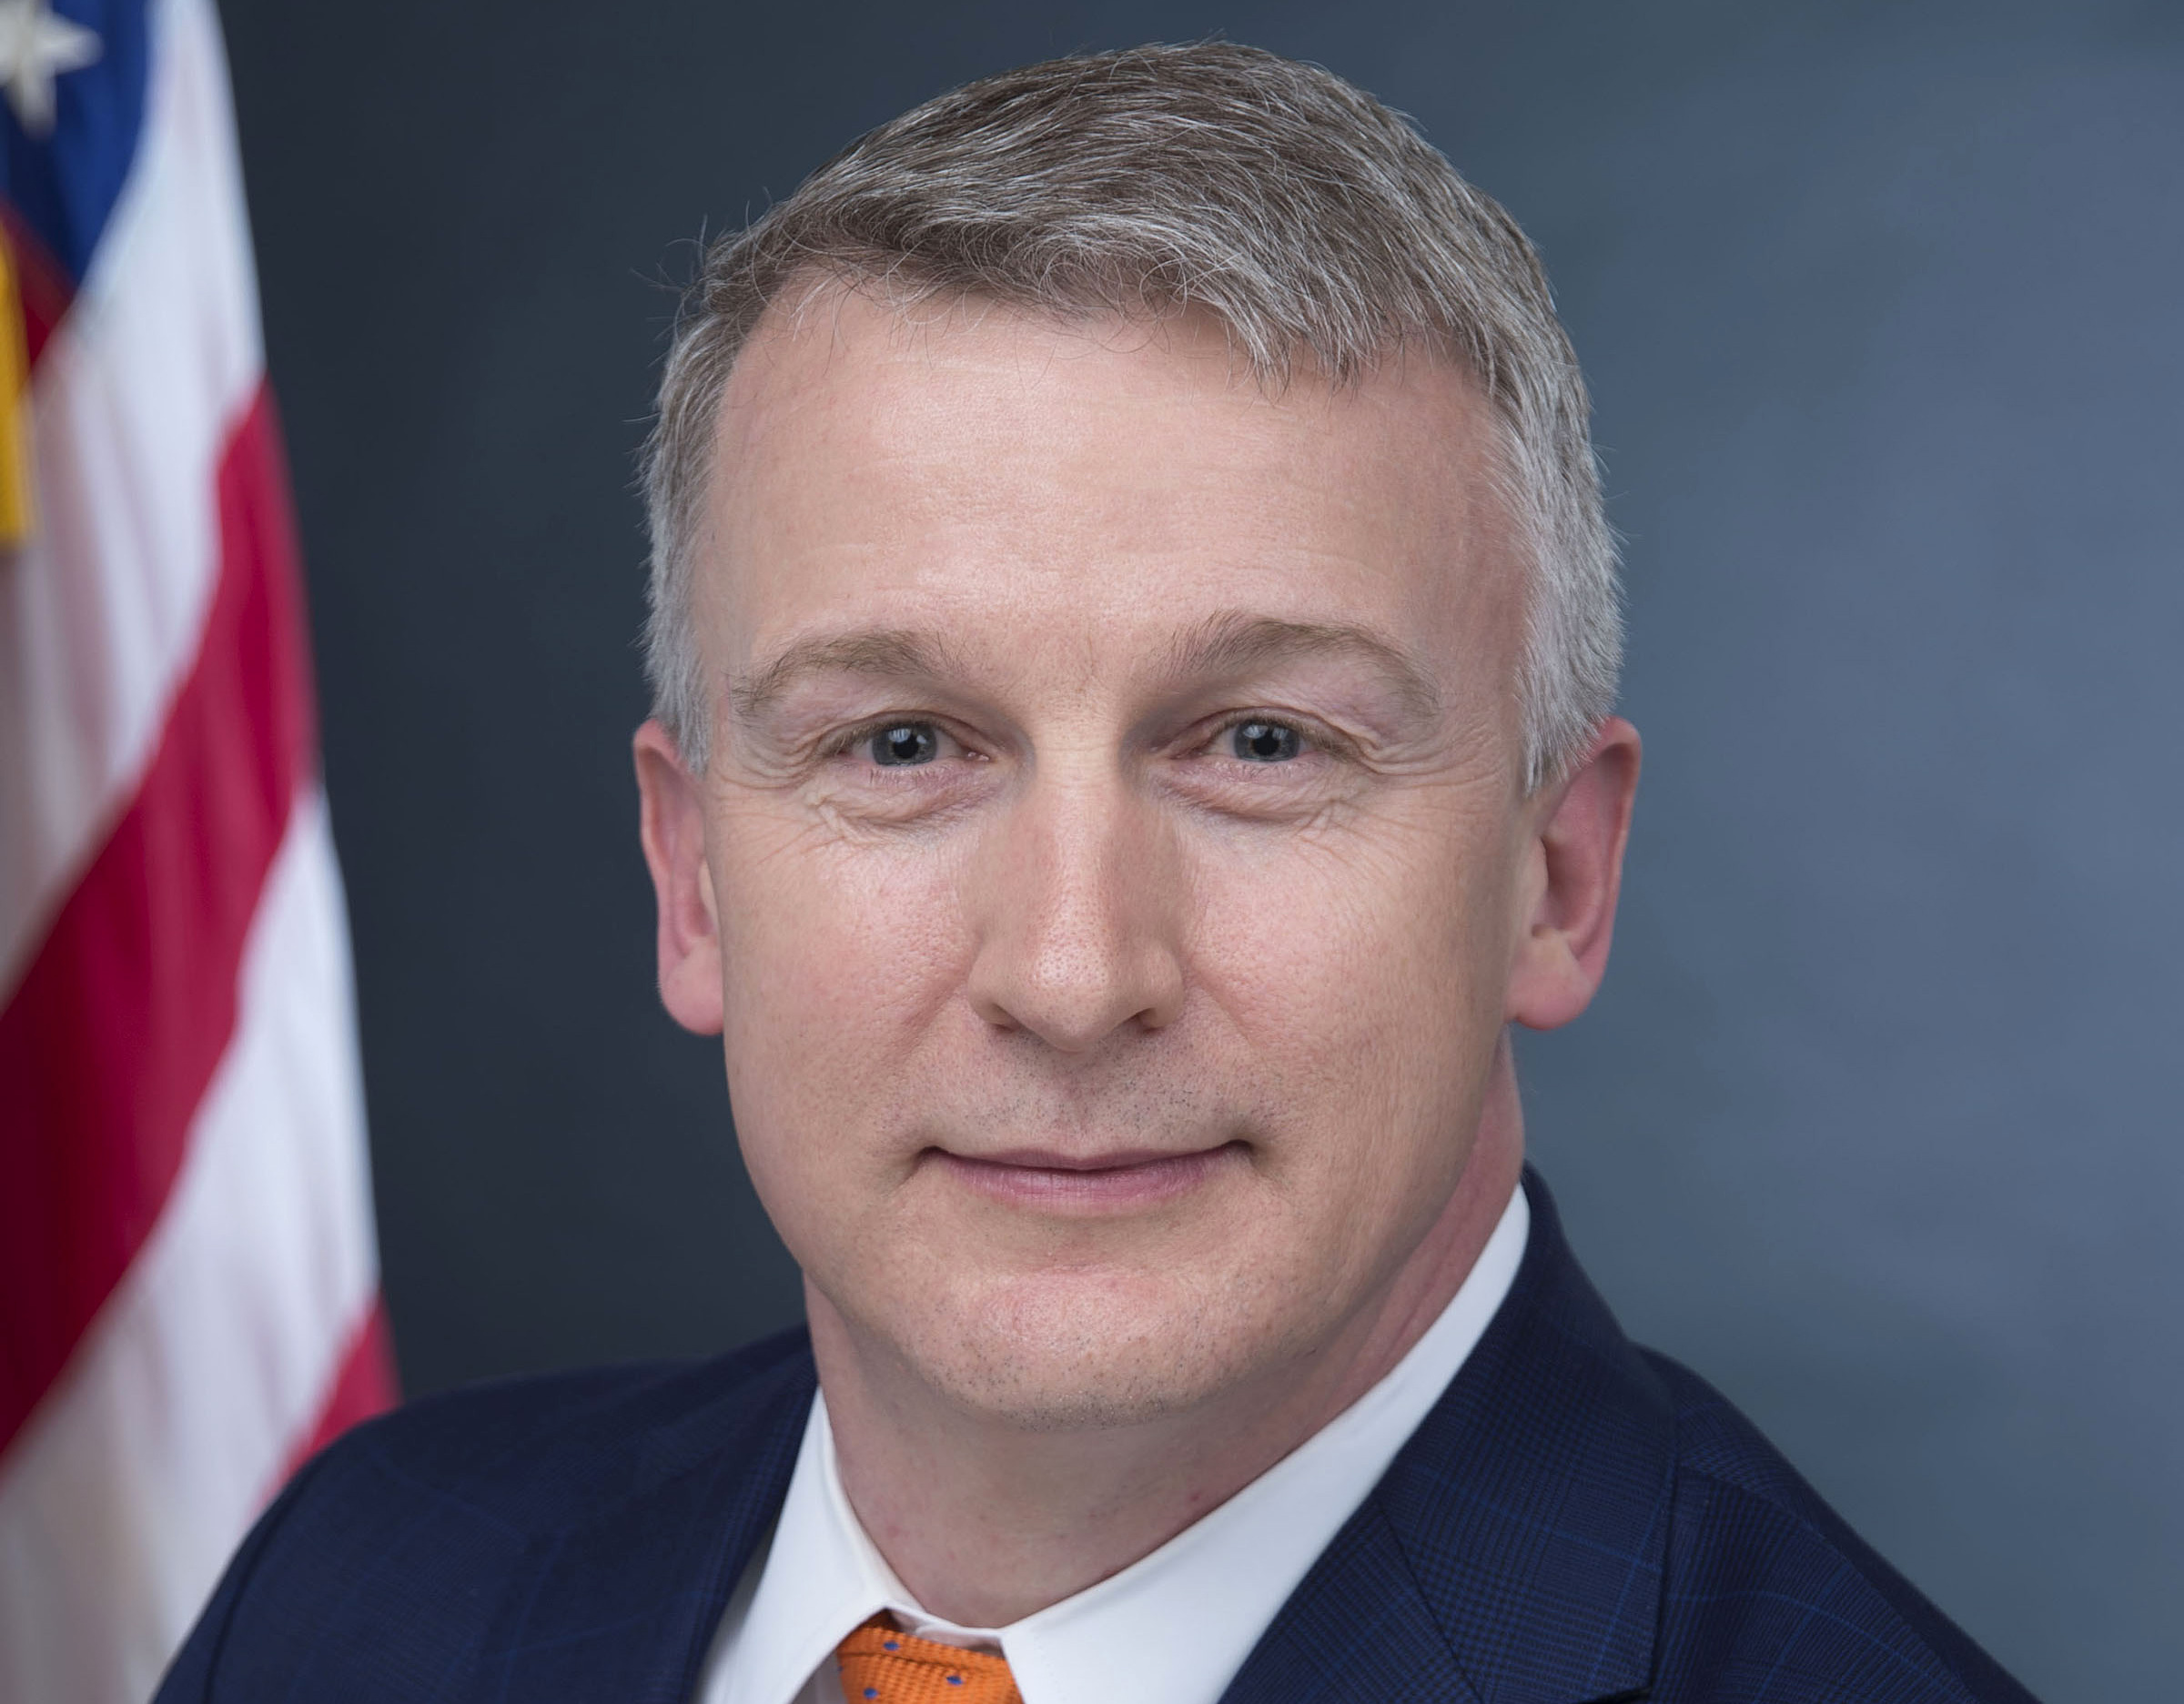 In this image provided by Public Health Emergency, a department of Health and Human Services, Rick Bright is shown in his official photo from April 27, 2017, in Washington. Bright filed a complaint May 5, 2020, with the Office of Special Counsel, a government agency responsible for whistleblower complaints. Heu2019s the former director of the Biomedical Advanced Research and Development Authority. Bright alleges he was removed from his job and reassigned to a lesser role because he resisted political pressure to allow widespread use of hydroxychloroquine, a malaria drug favored by President Donald Trump. Photo: AP